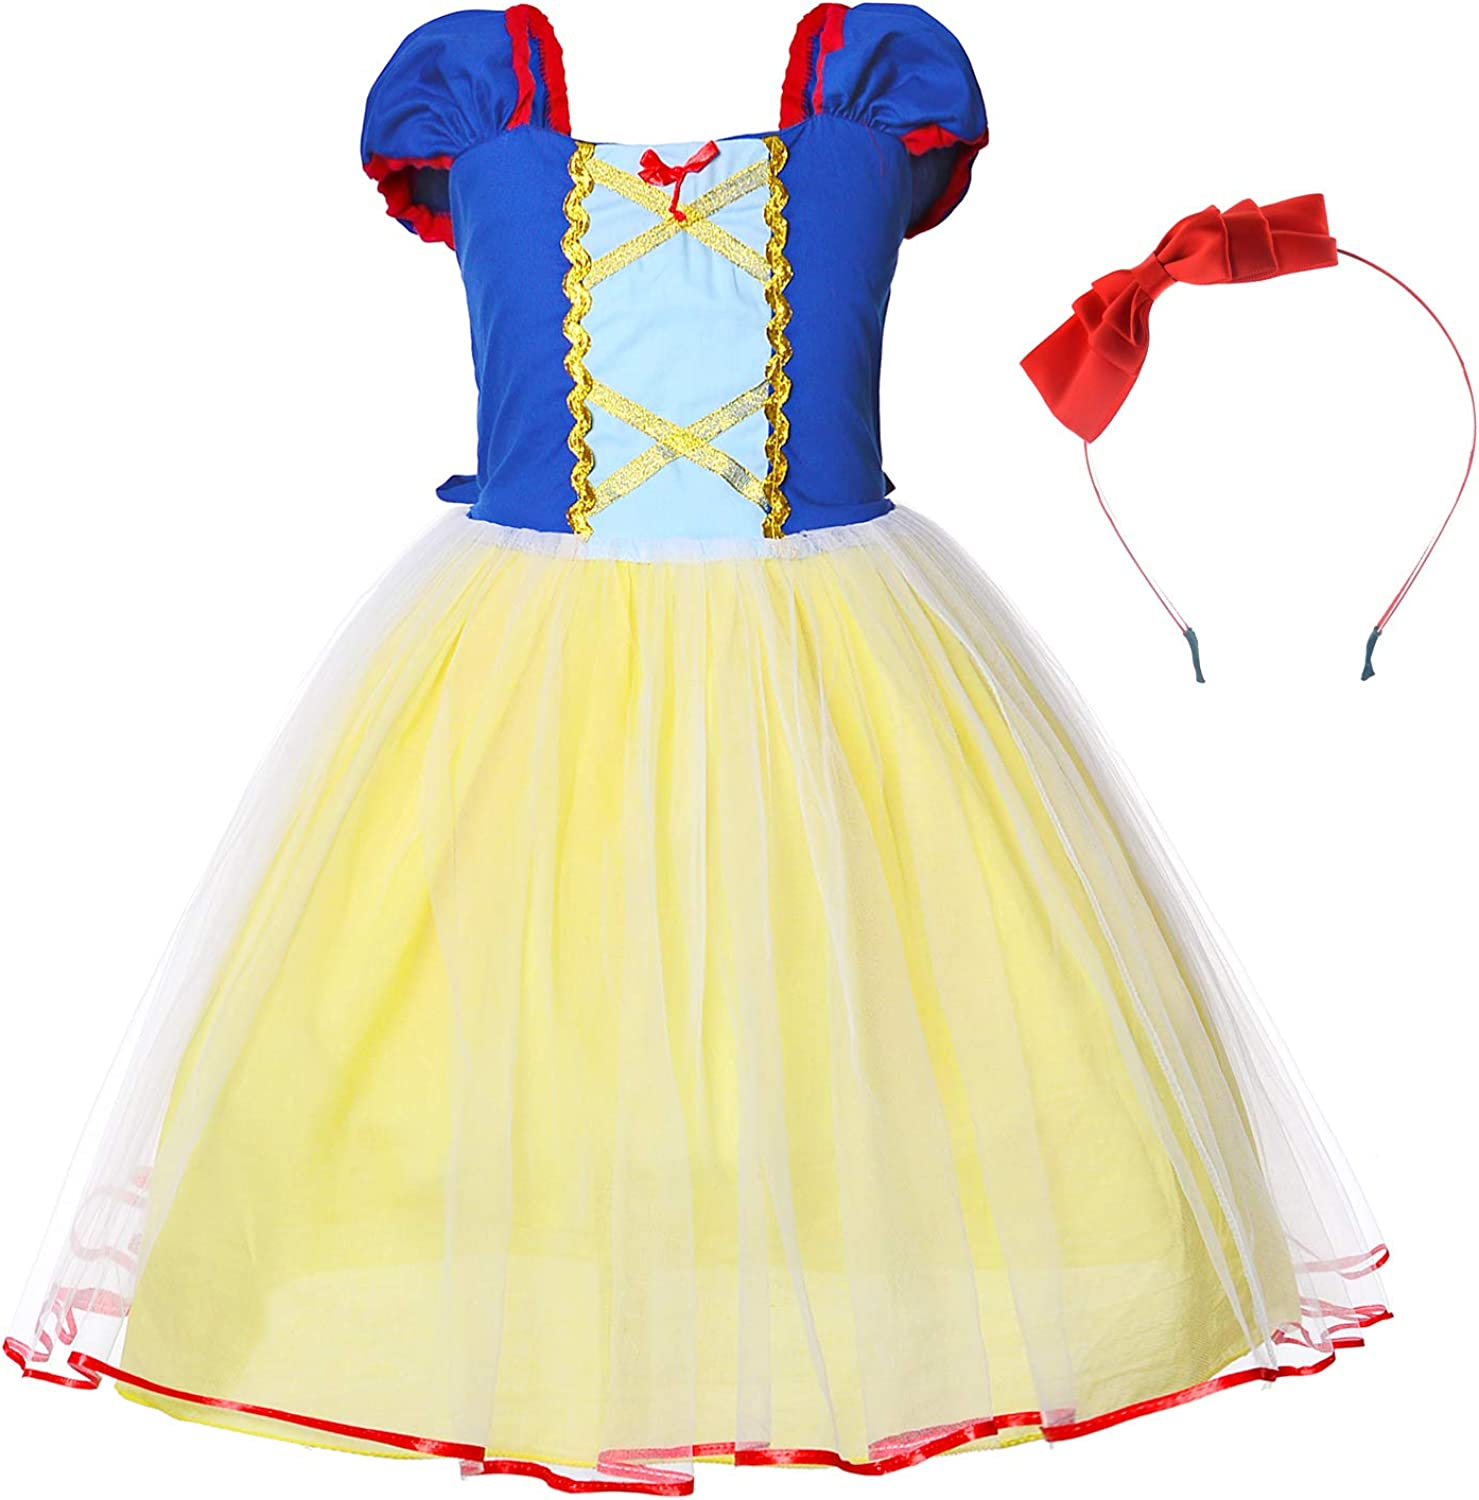 Princess Birthday Party Costume for Toddler Girls Dress Up with Headband 2-6 Years